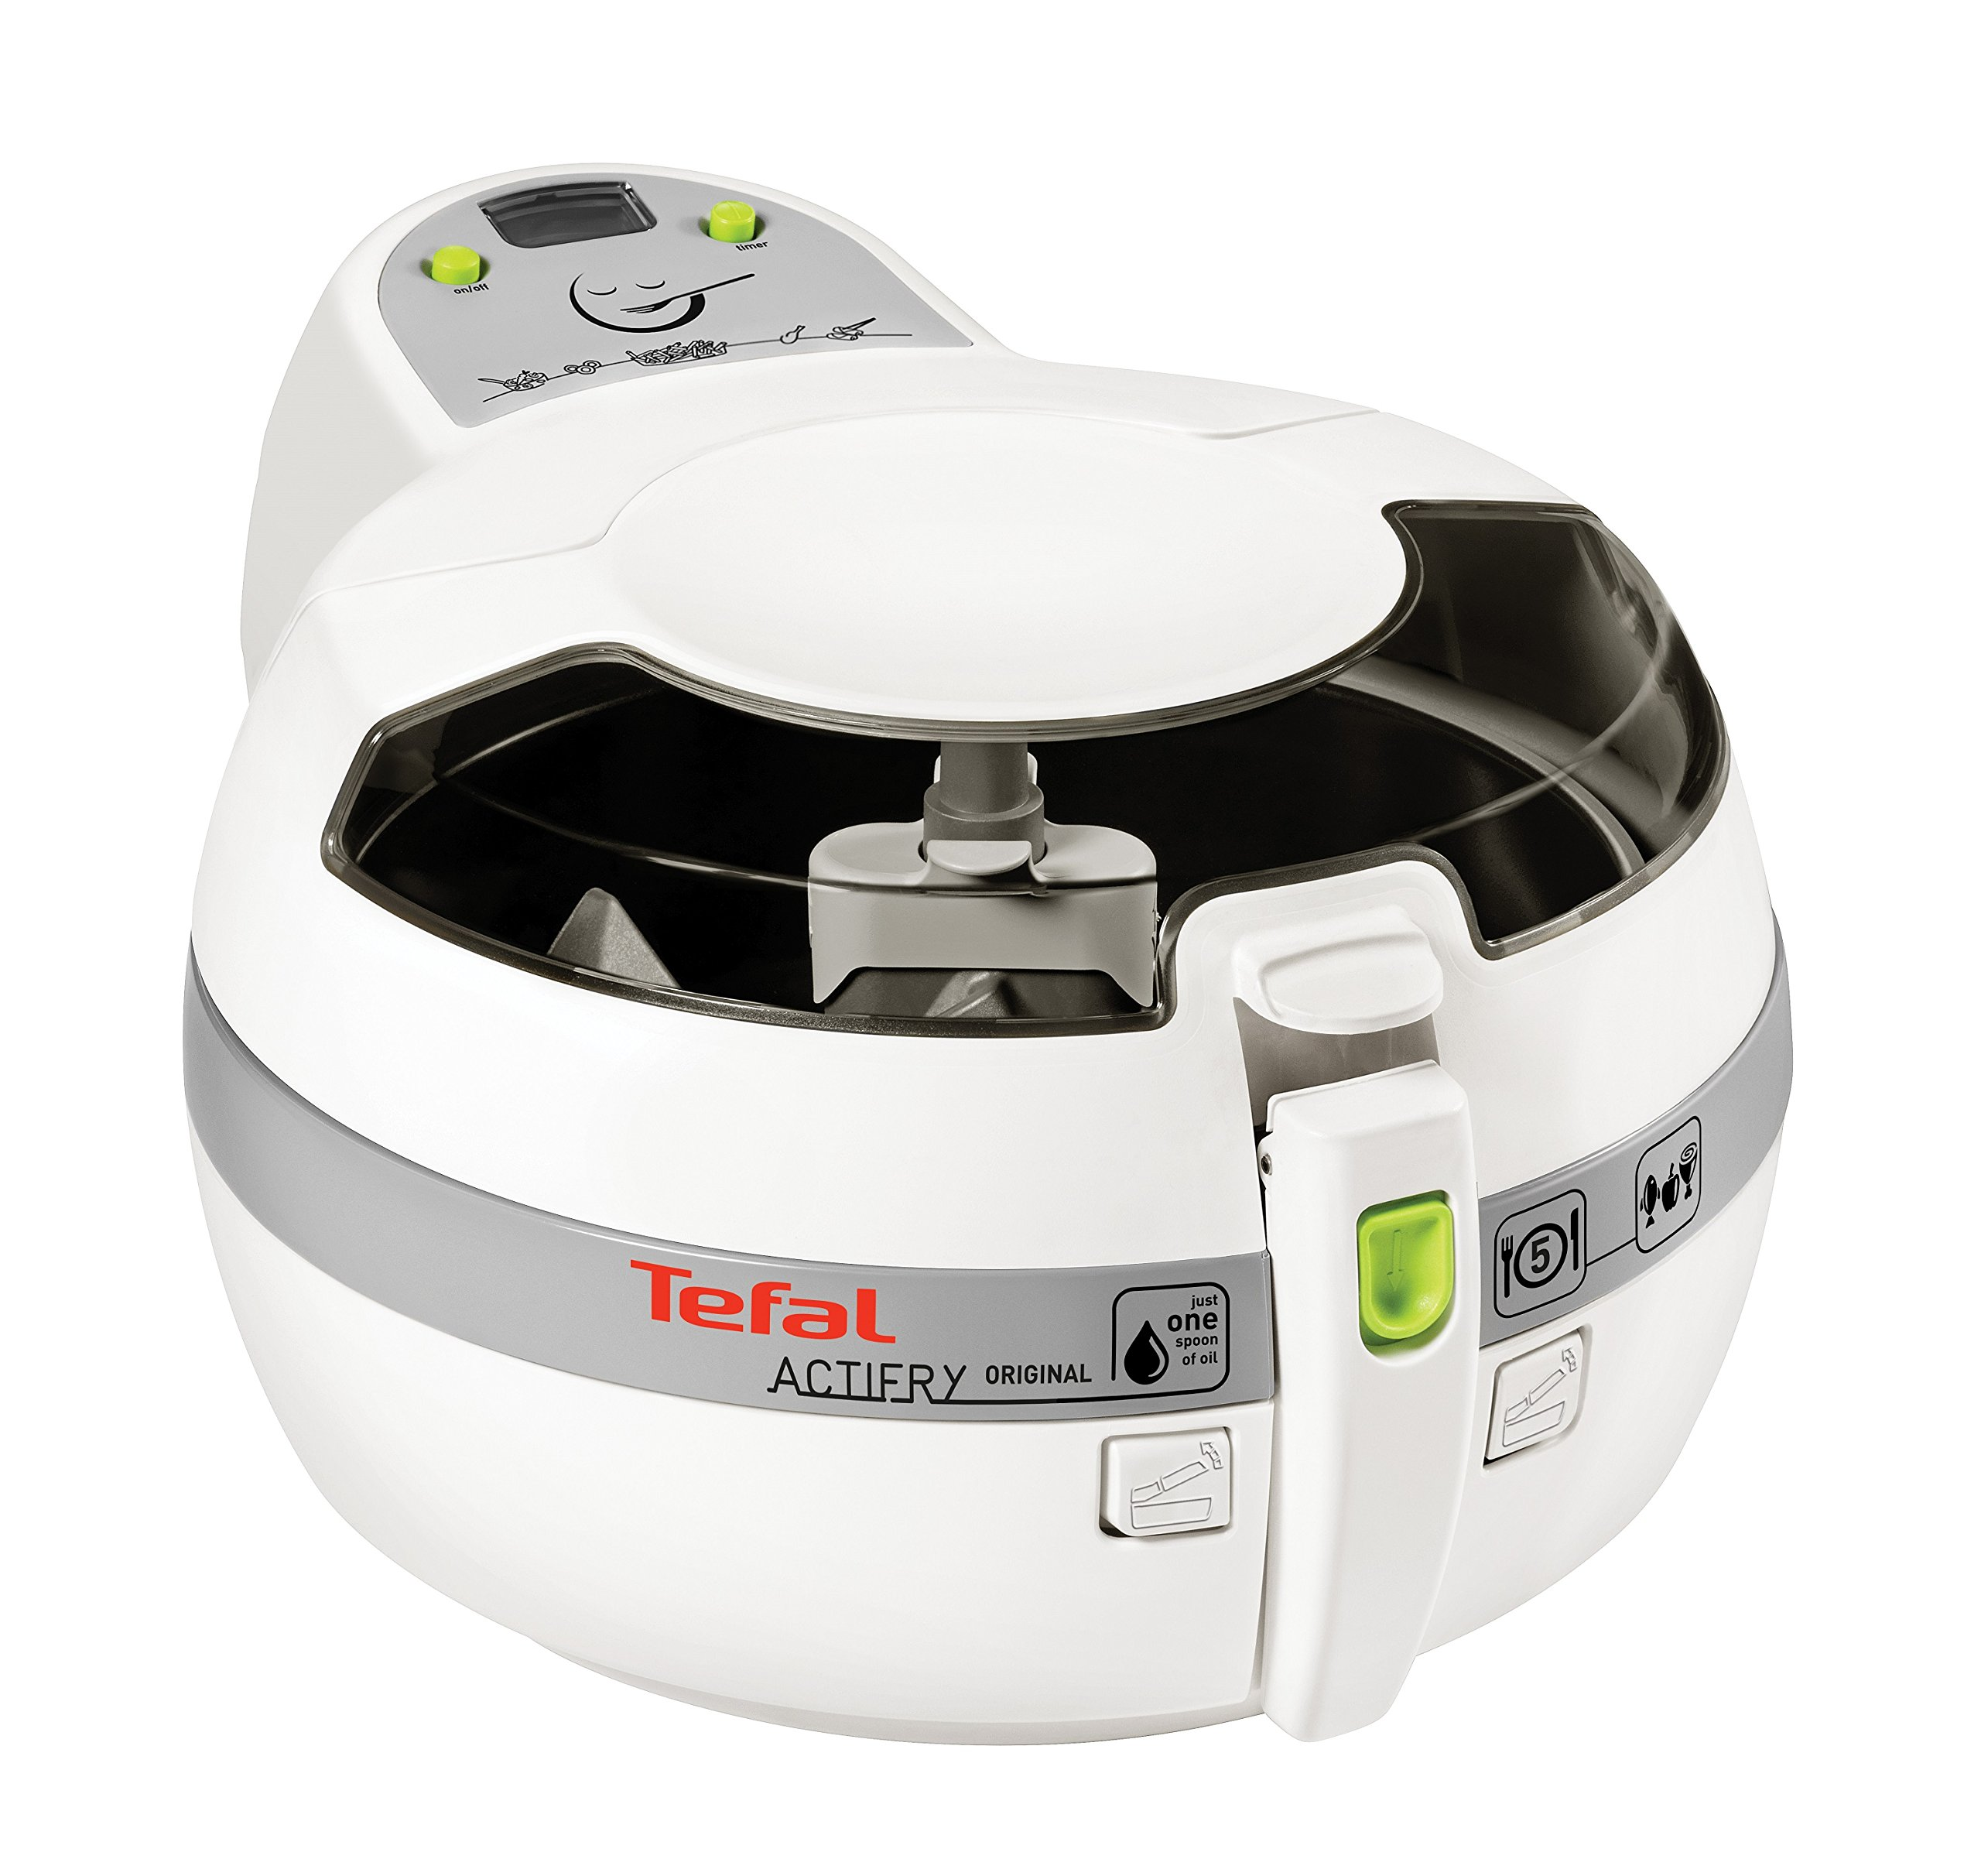 tefal actifry fettarm friteuse 1kg chips essen k che abendessen zuhause party ebay. Black Bedroom Furniture Sets. Home Design Ideas